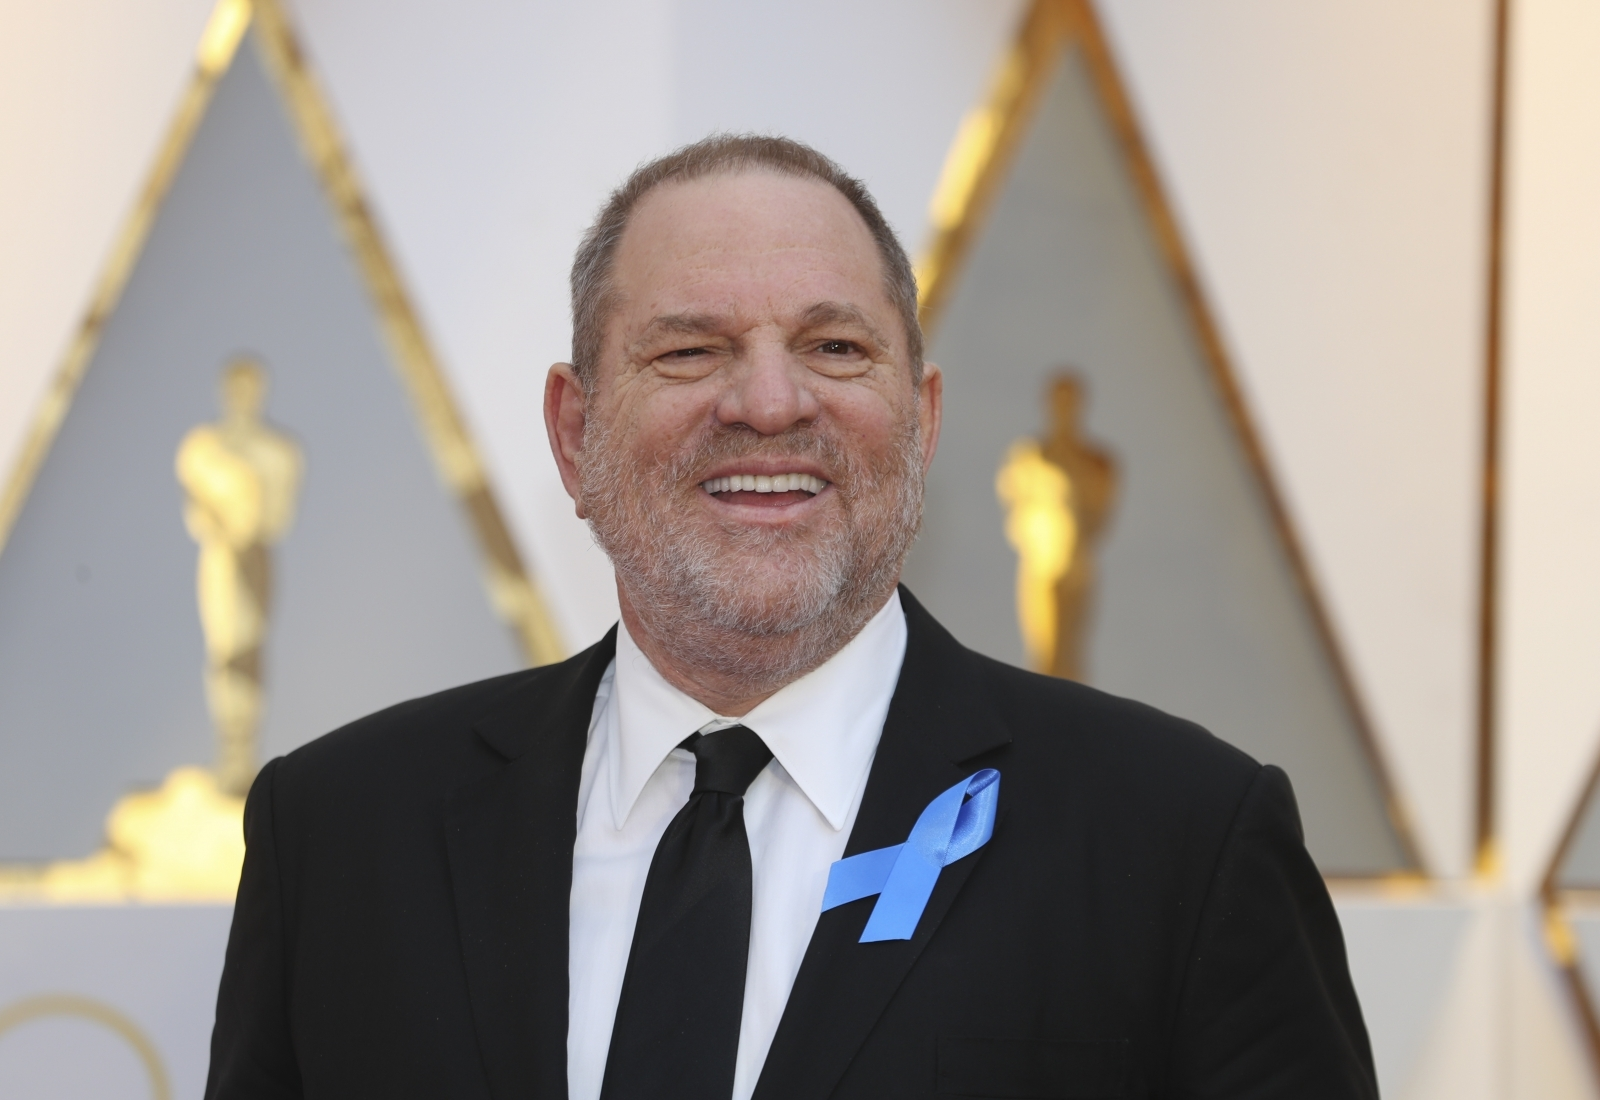 Harvey Weinstein Apologizes for Sexual Harassment